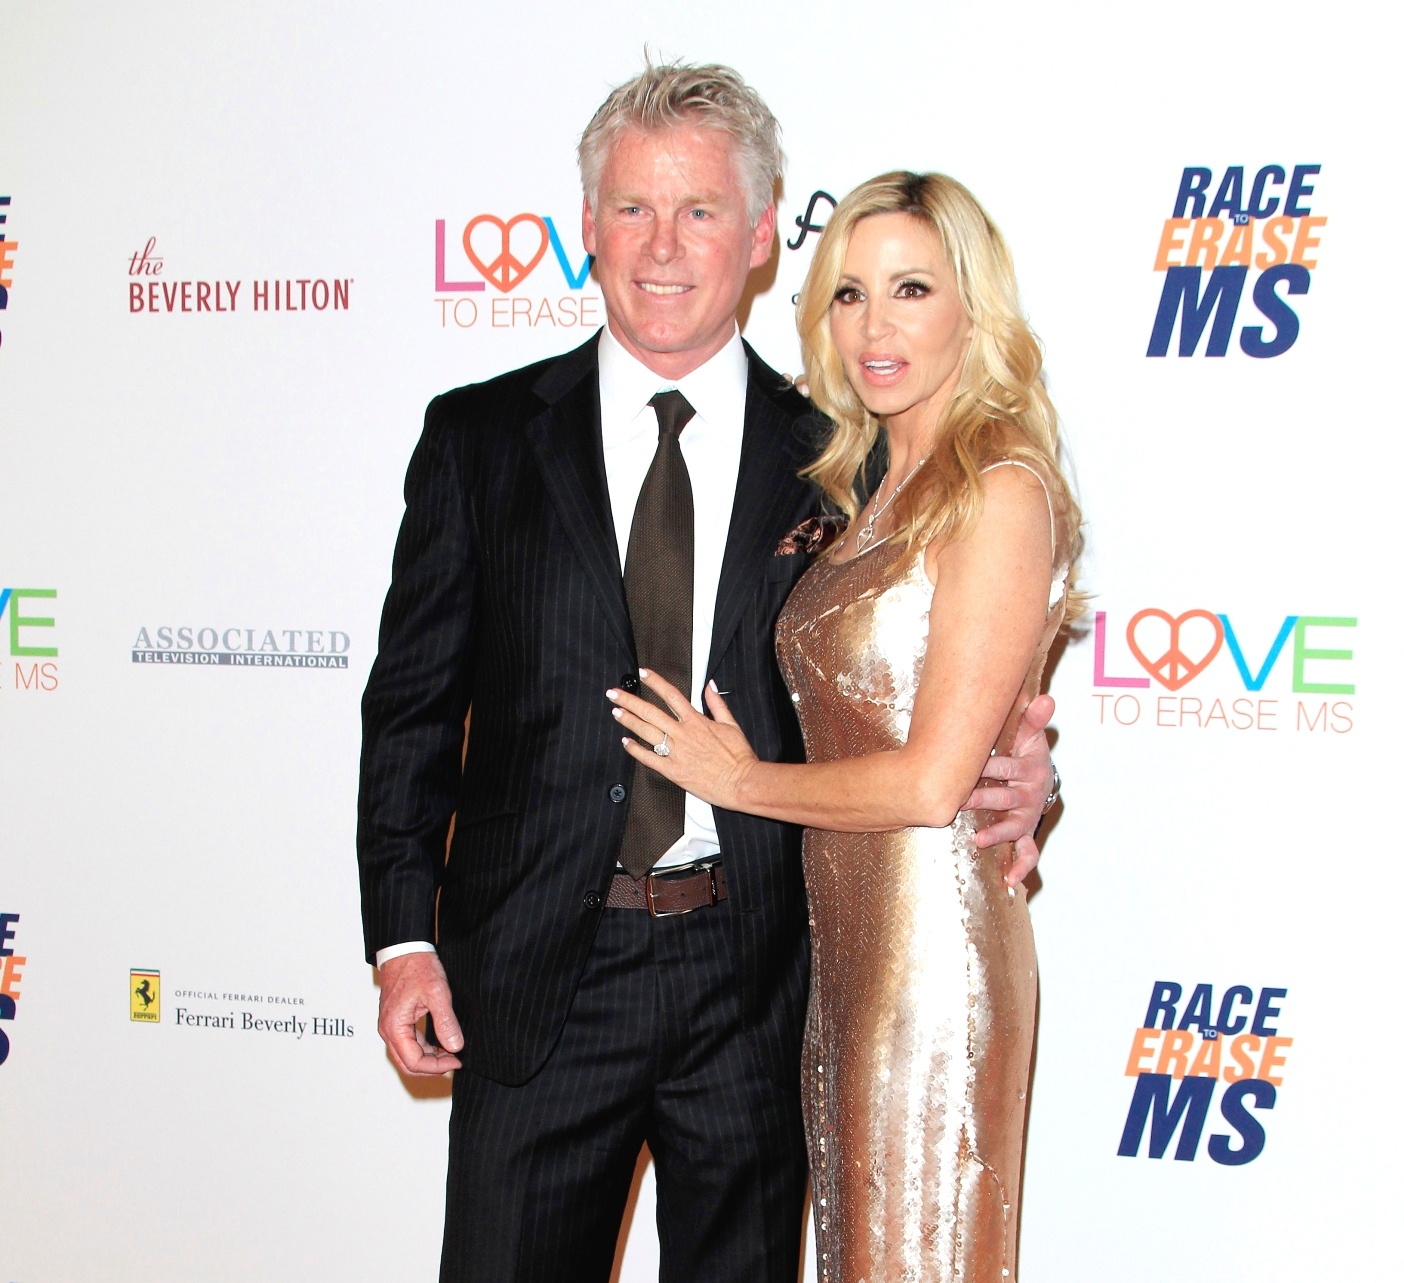 RHOBH Camille Grammer marries David C. Meyer